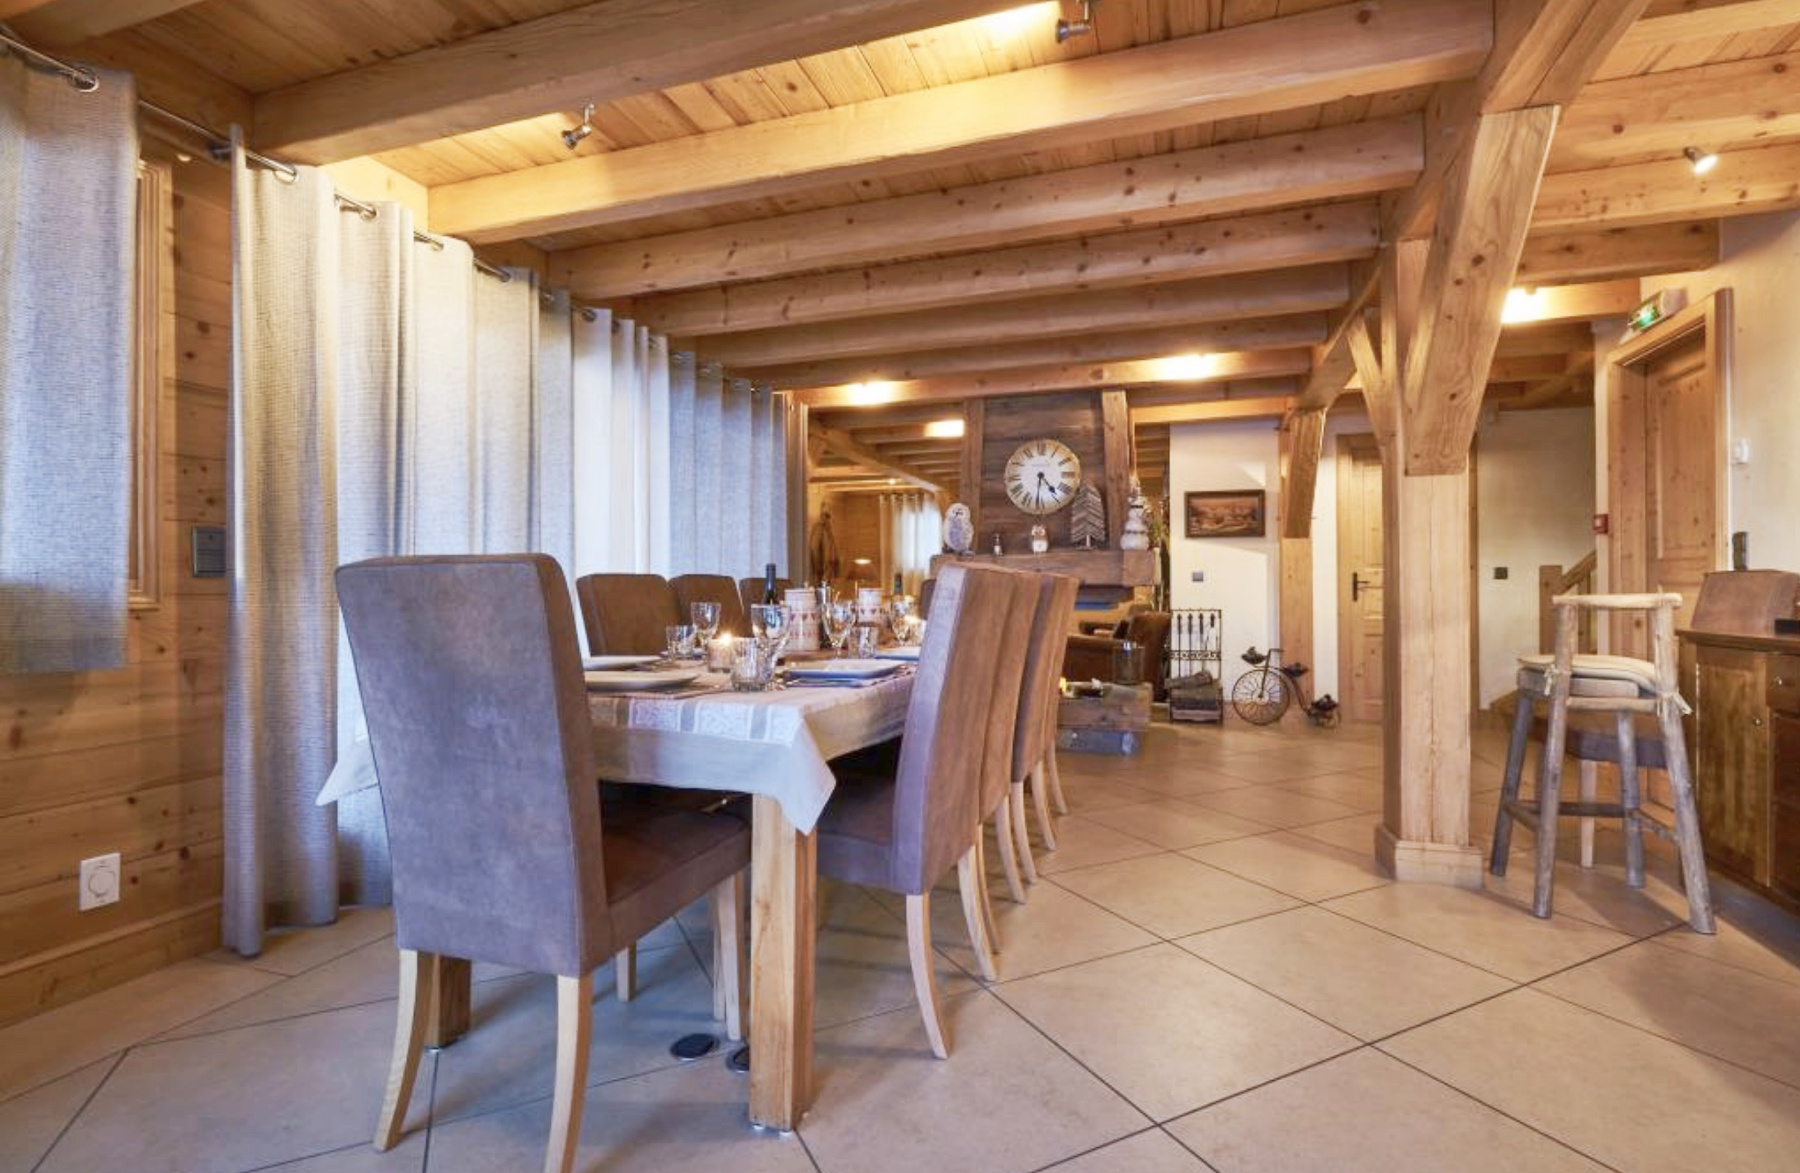 Real Estate in Morzine France